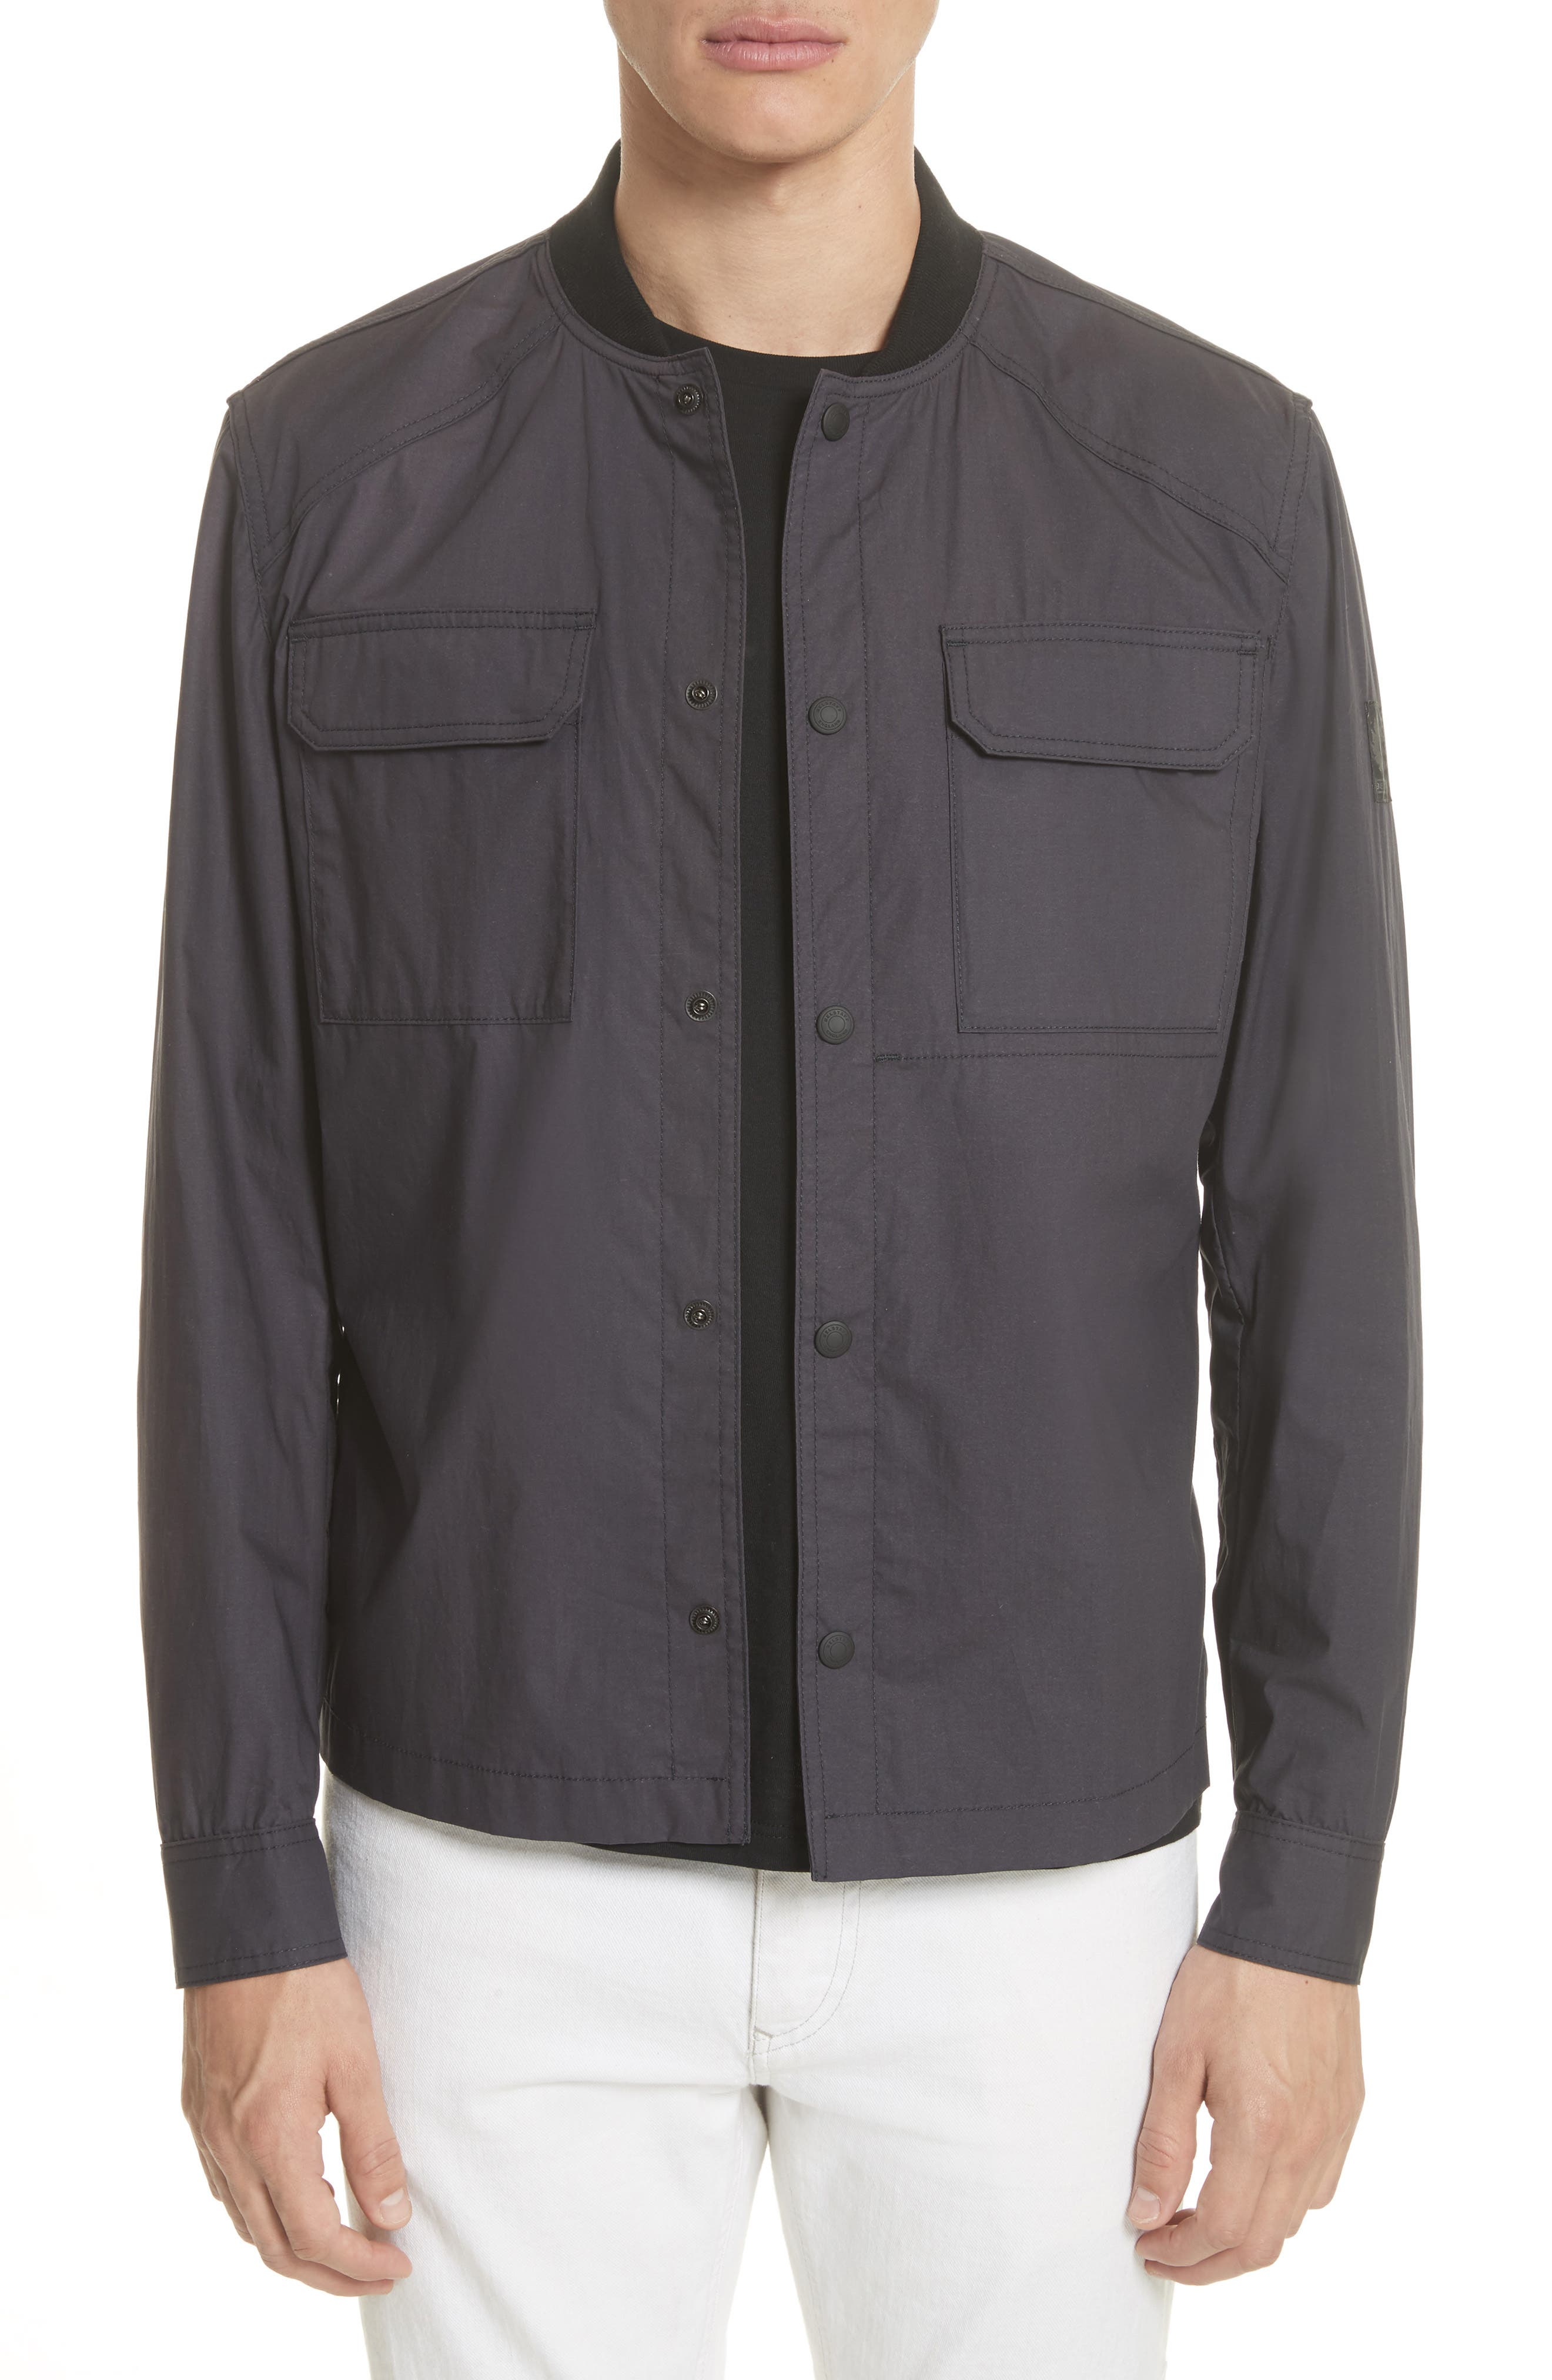 Cardingham Jacket,                         Main,                         color, Charcoal